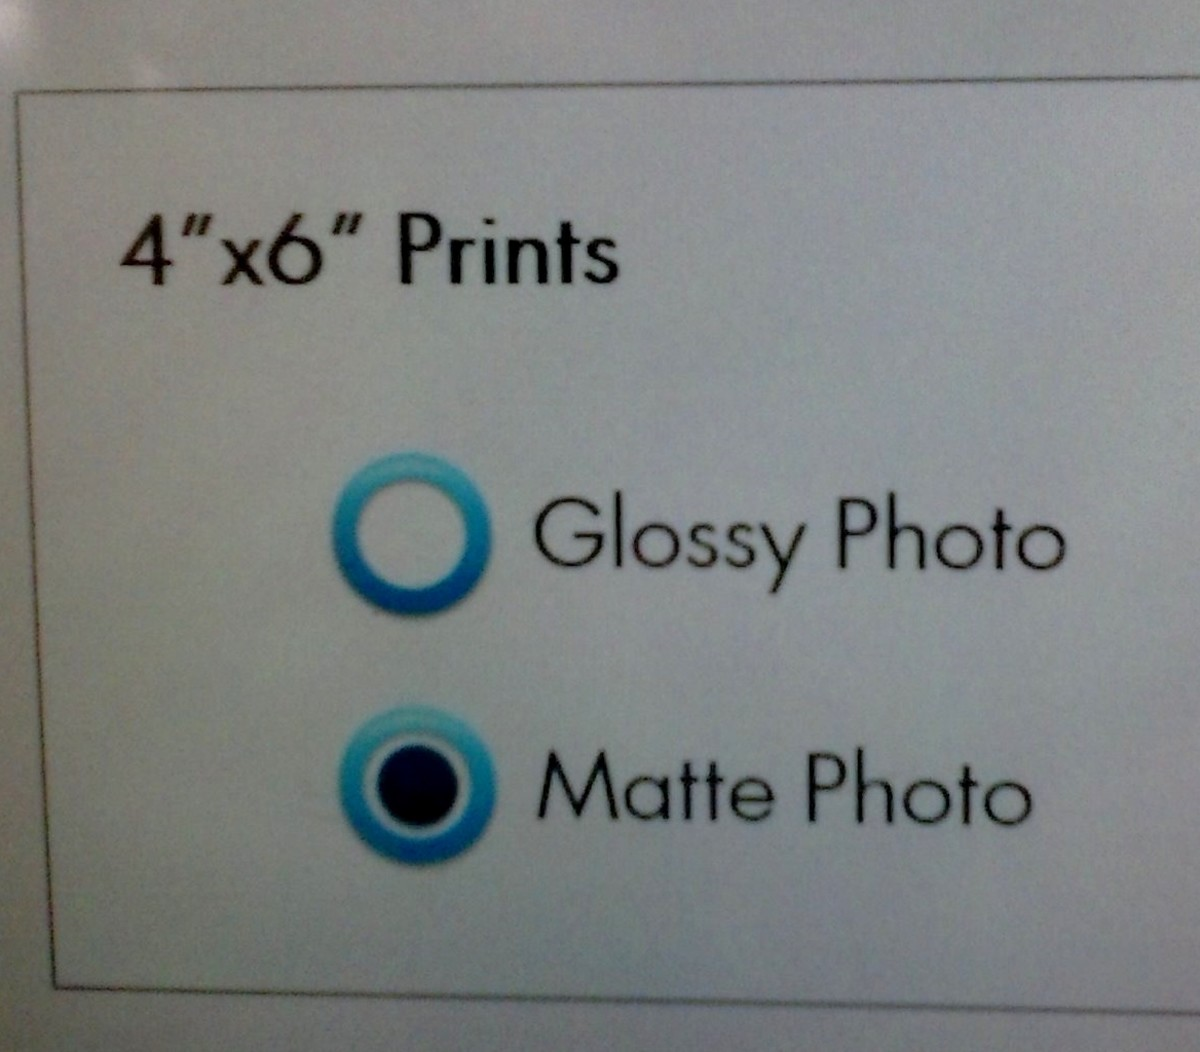 You can choose the method of paper type you like best. Walmart uses the photo paper only - so decide which one you like best. I am partial to the matte photo for my invitations. But, it's a personal choice.